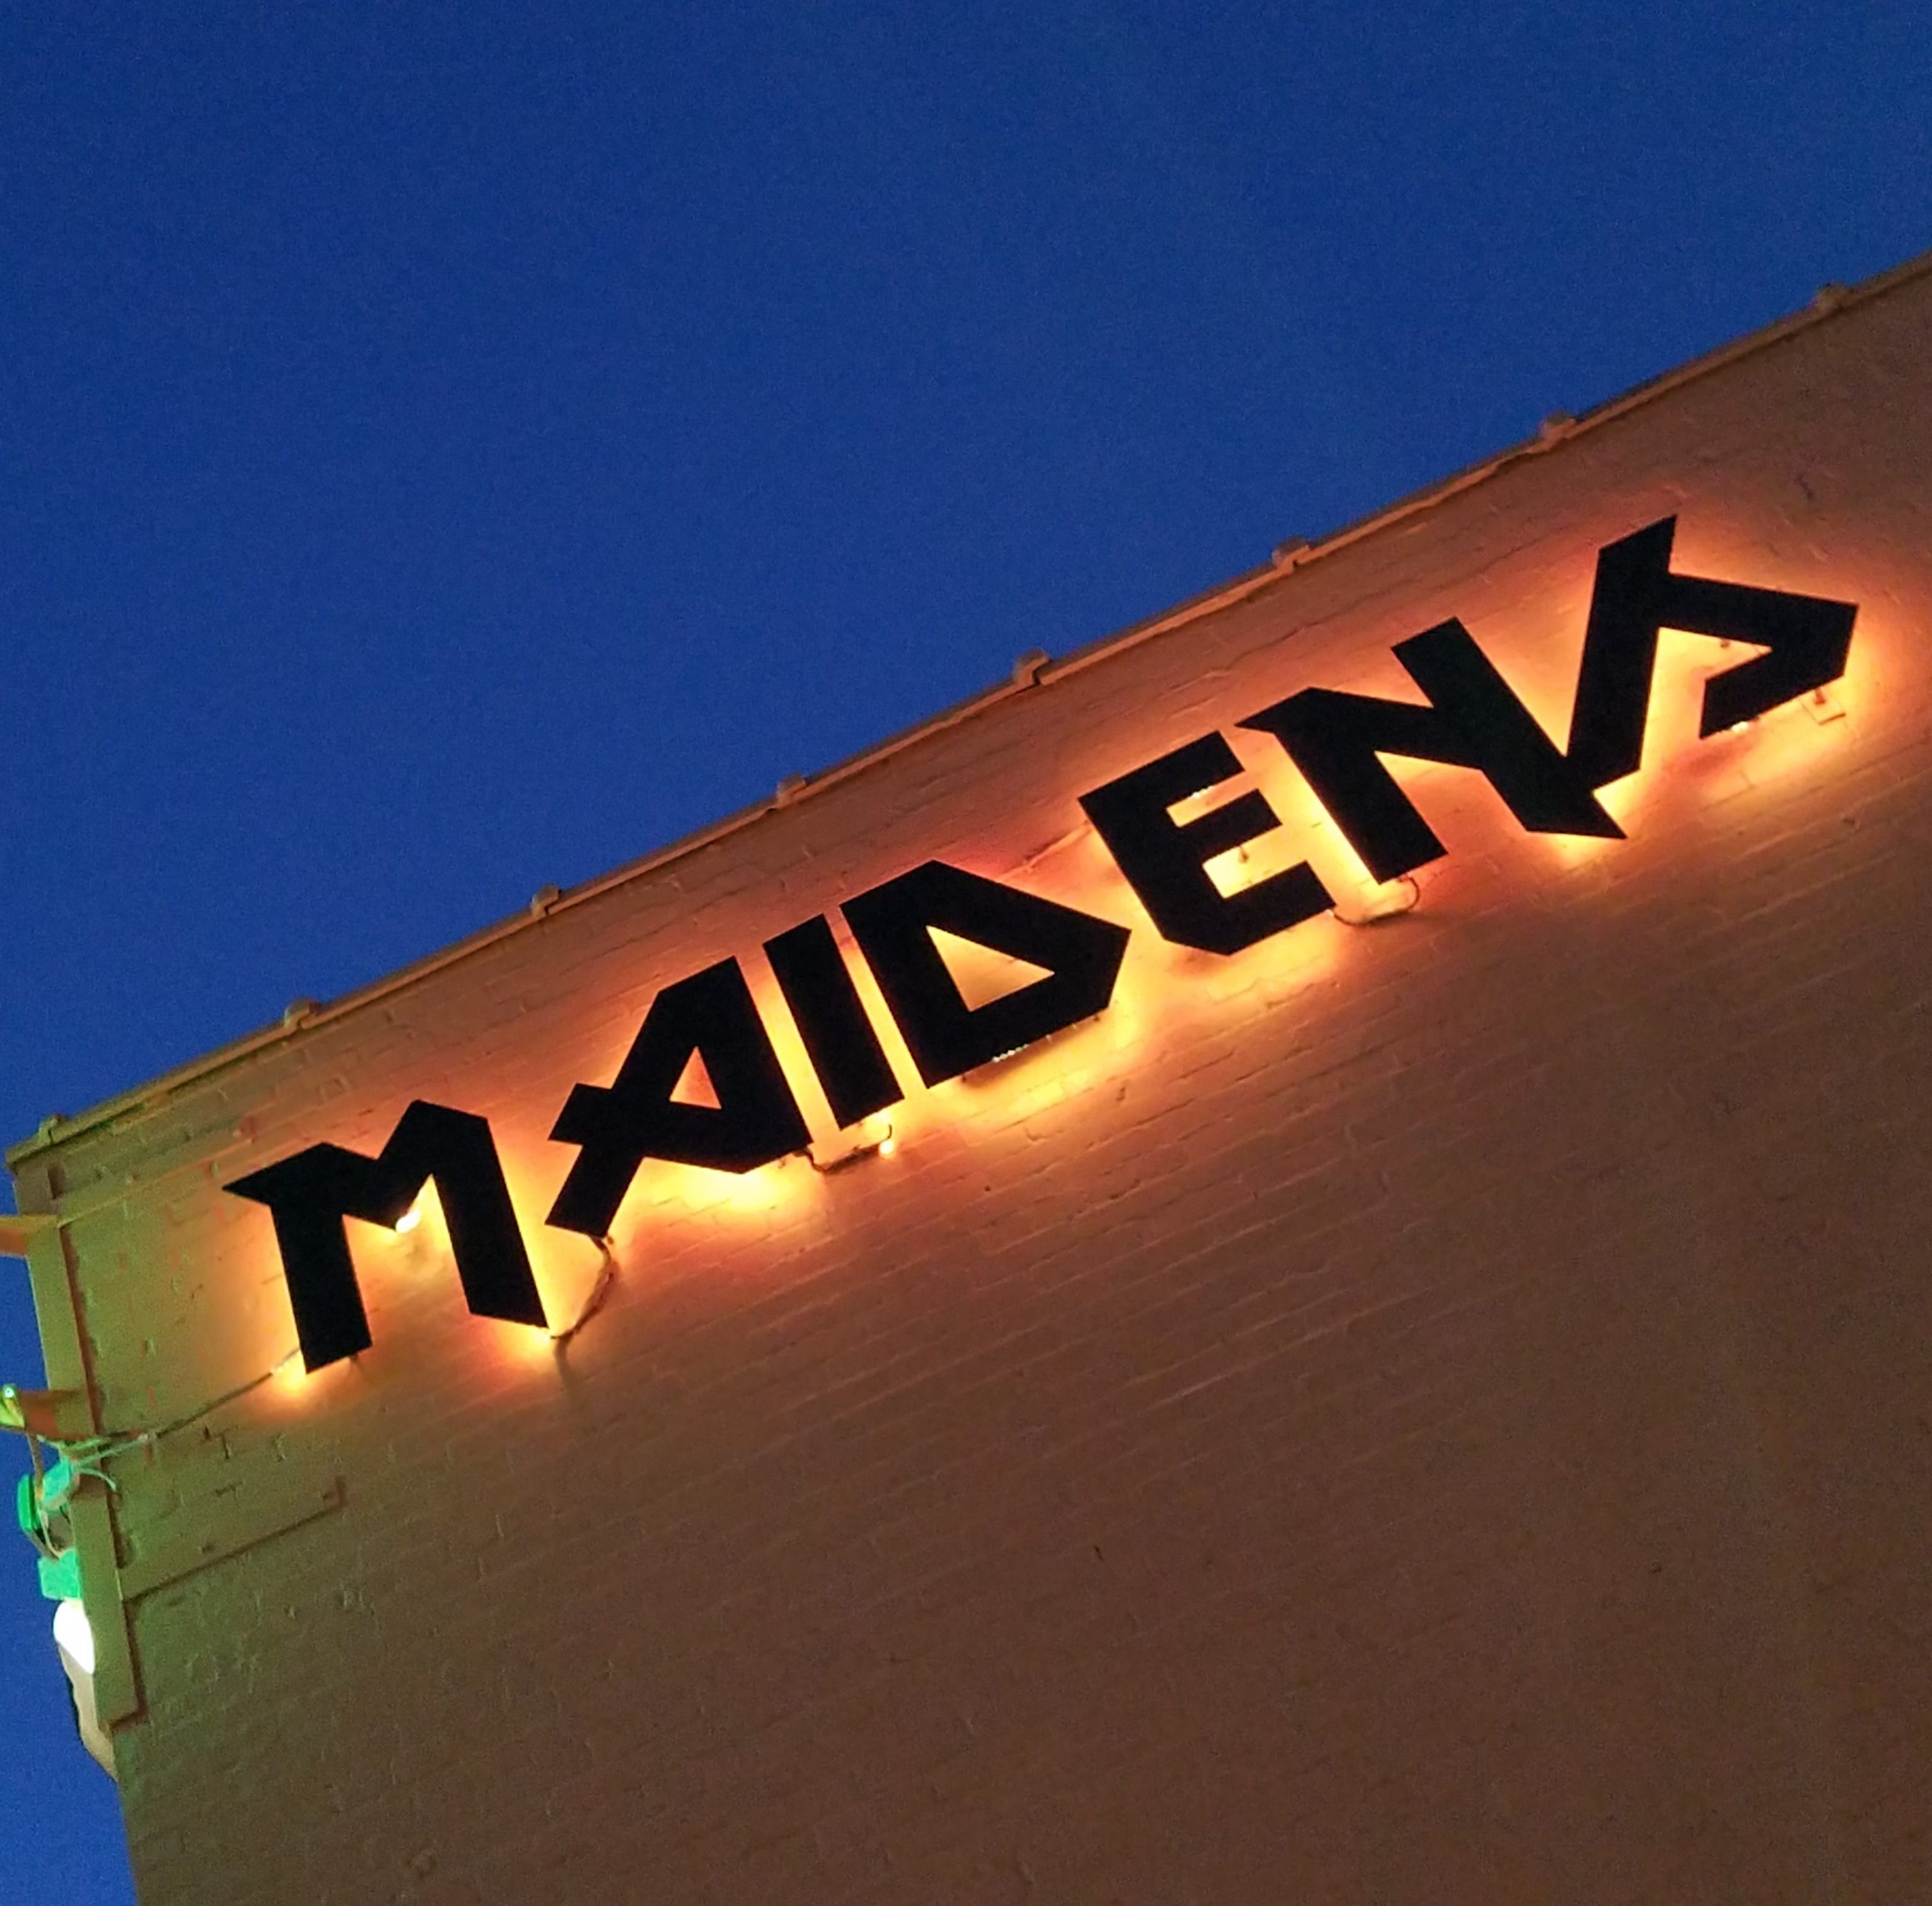 Maidens Brewery and Pub brings great beer, pub grub to Evansville's Franklin Street